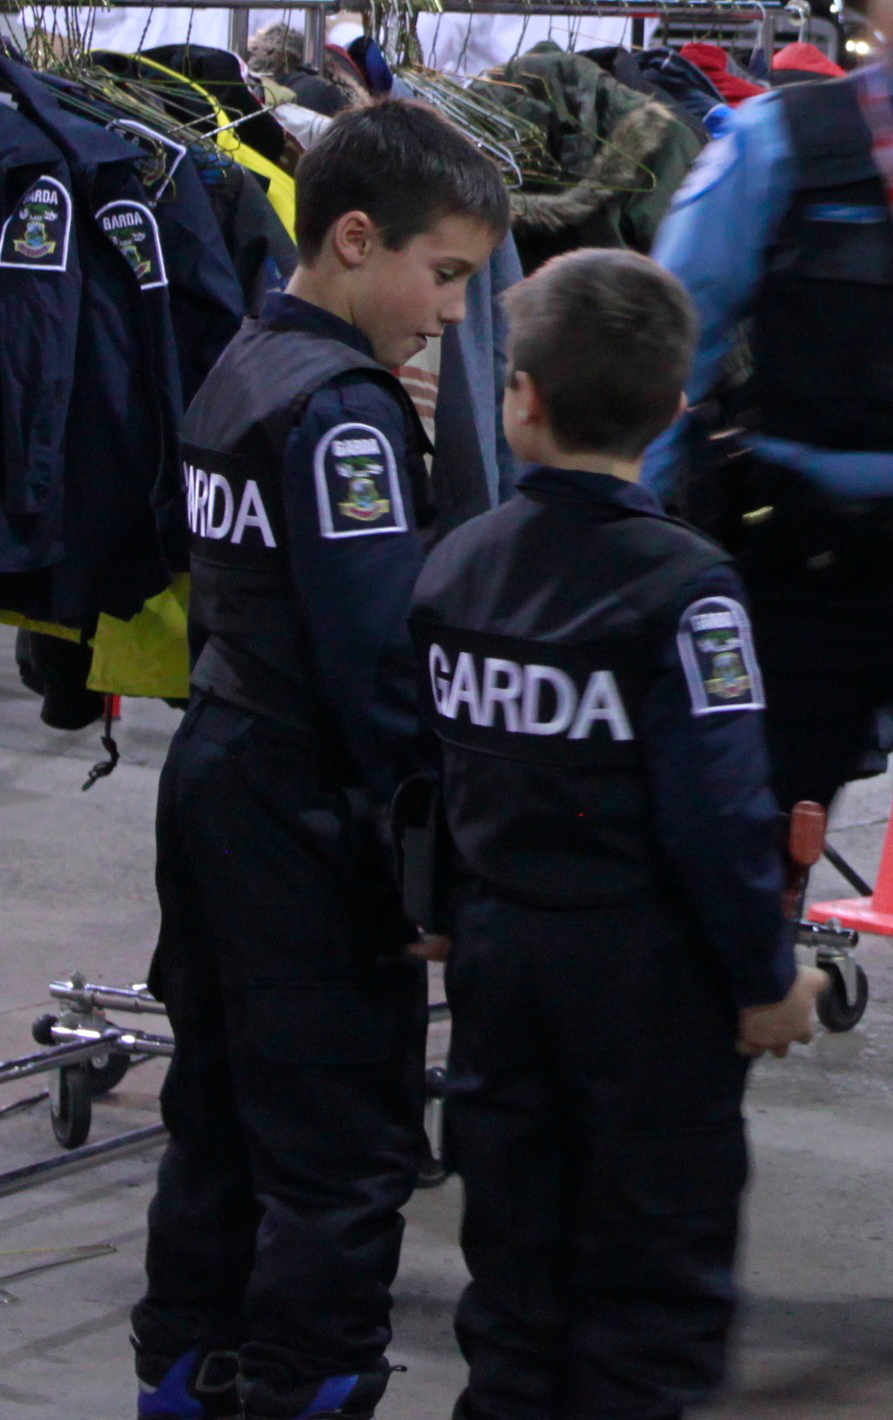 Garda Kids Family Day